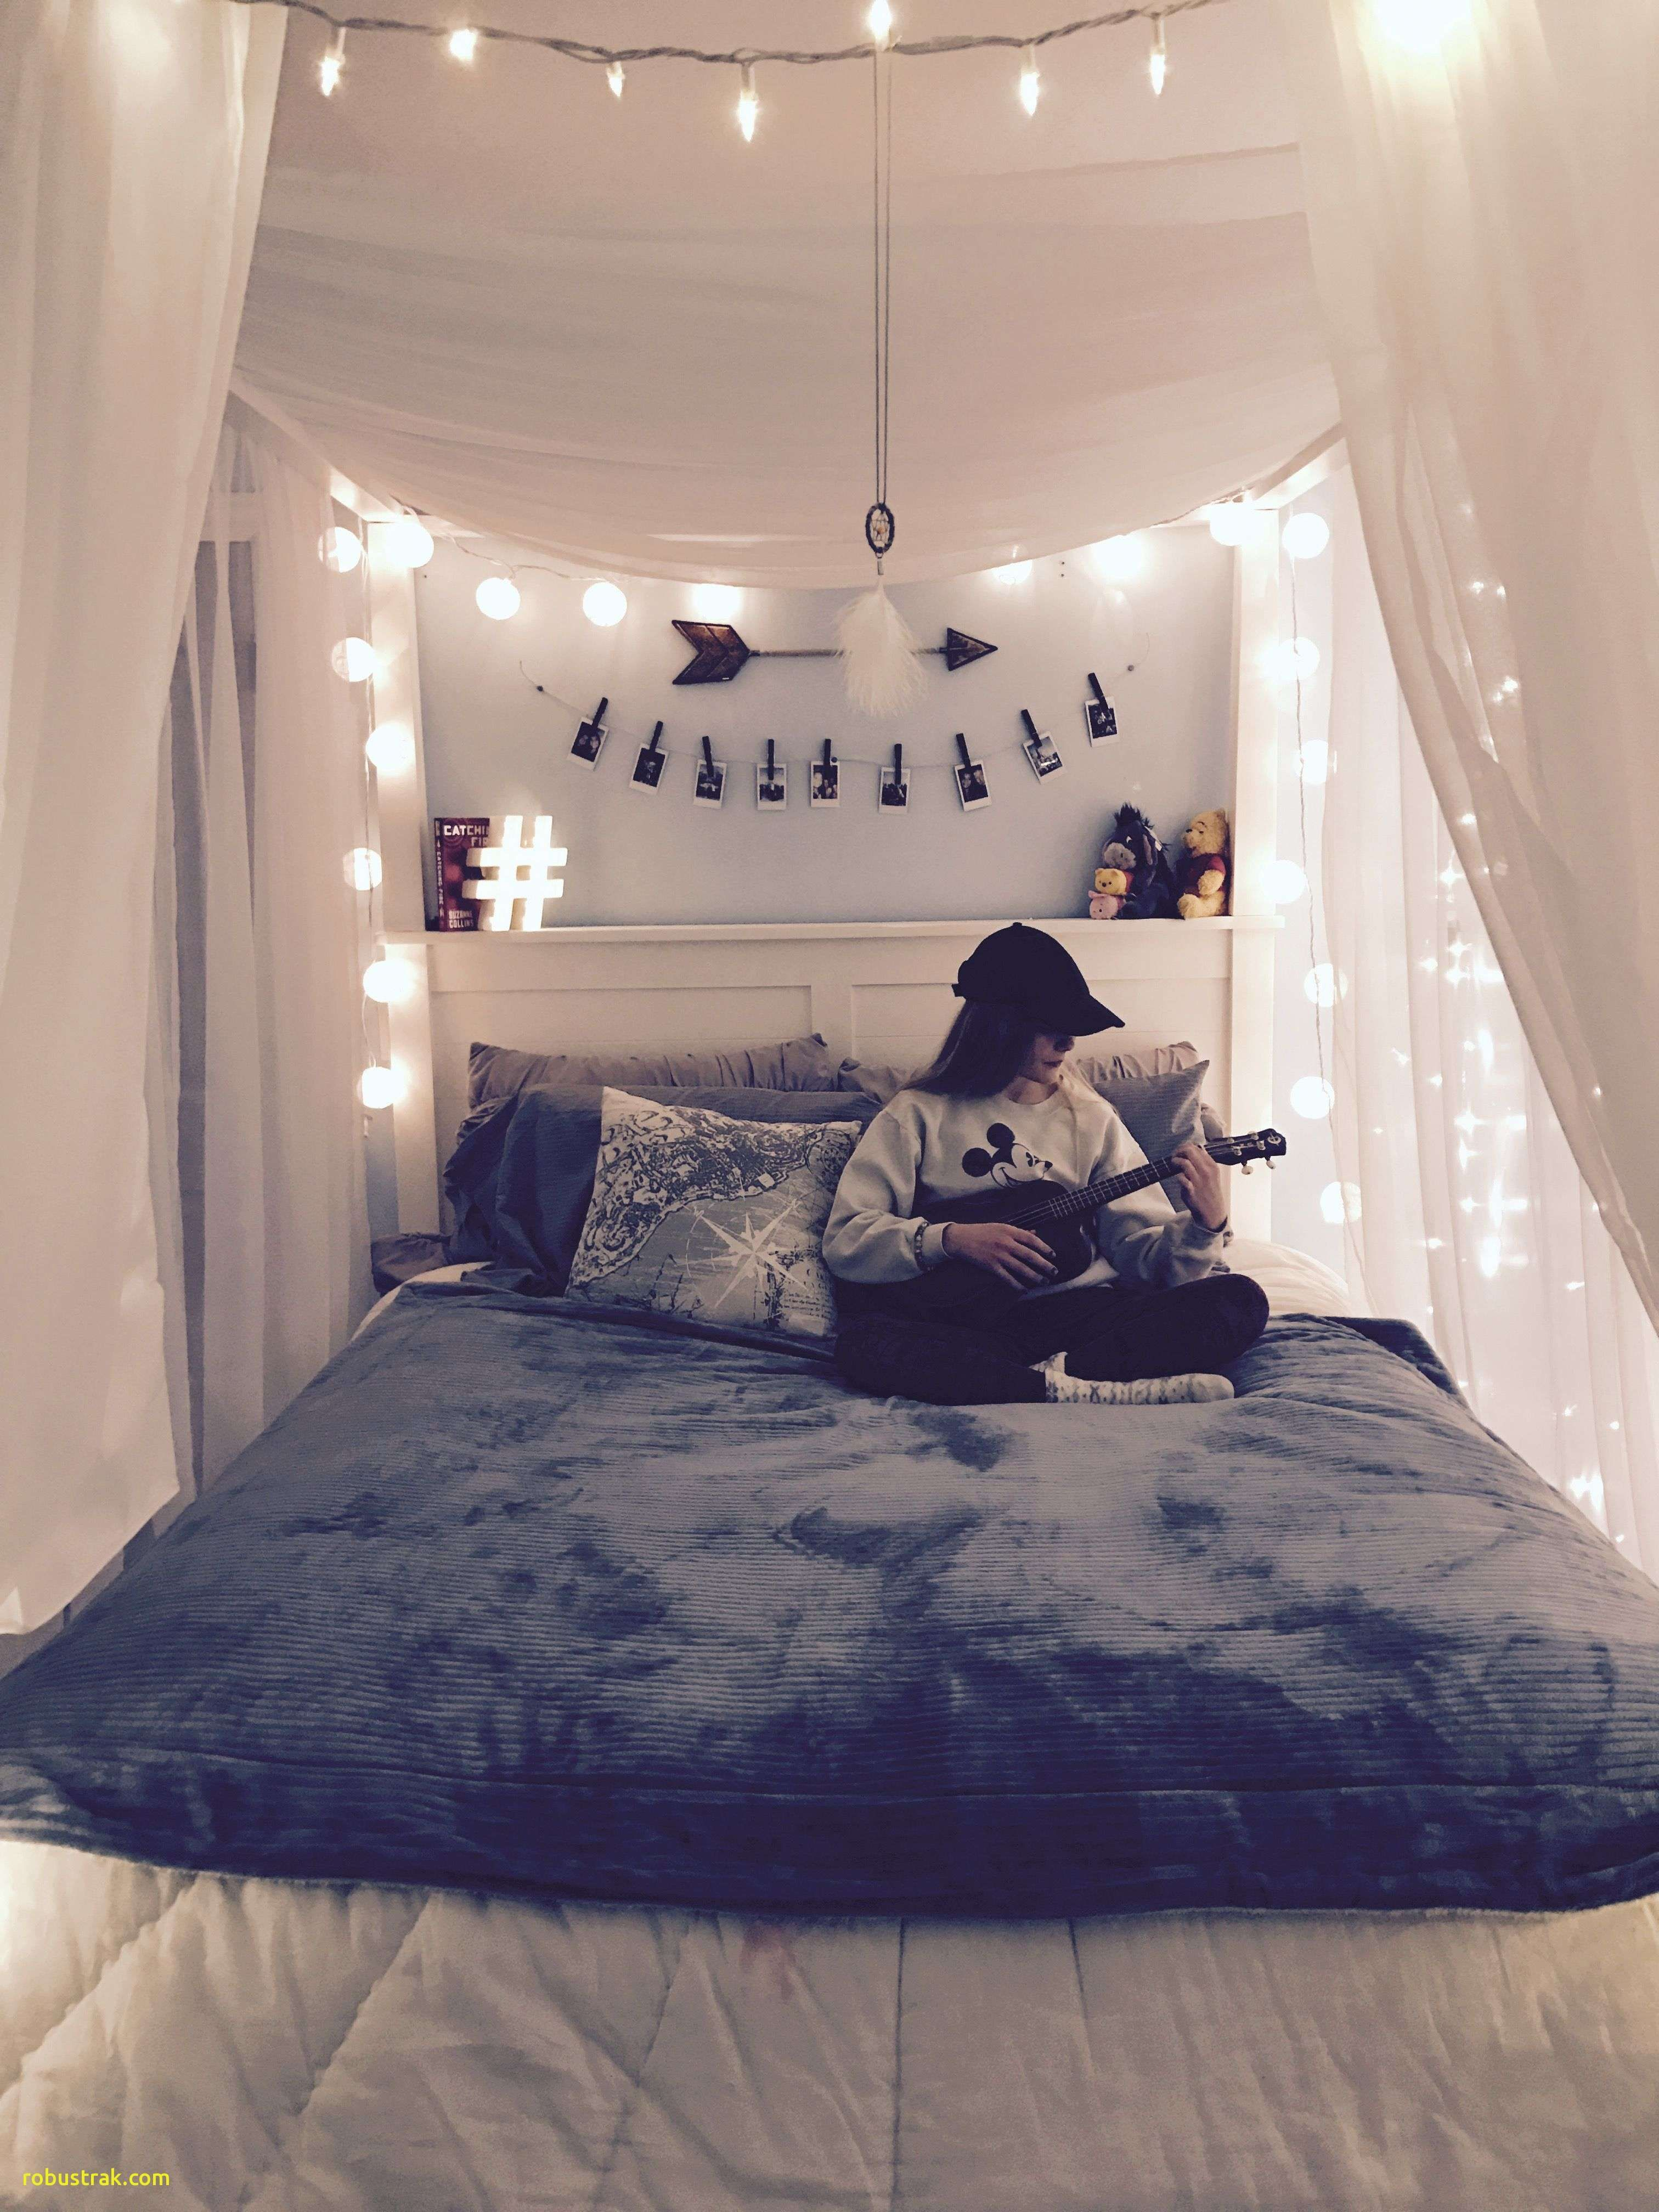 Pin On Awesome Bedroom Ideas